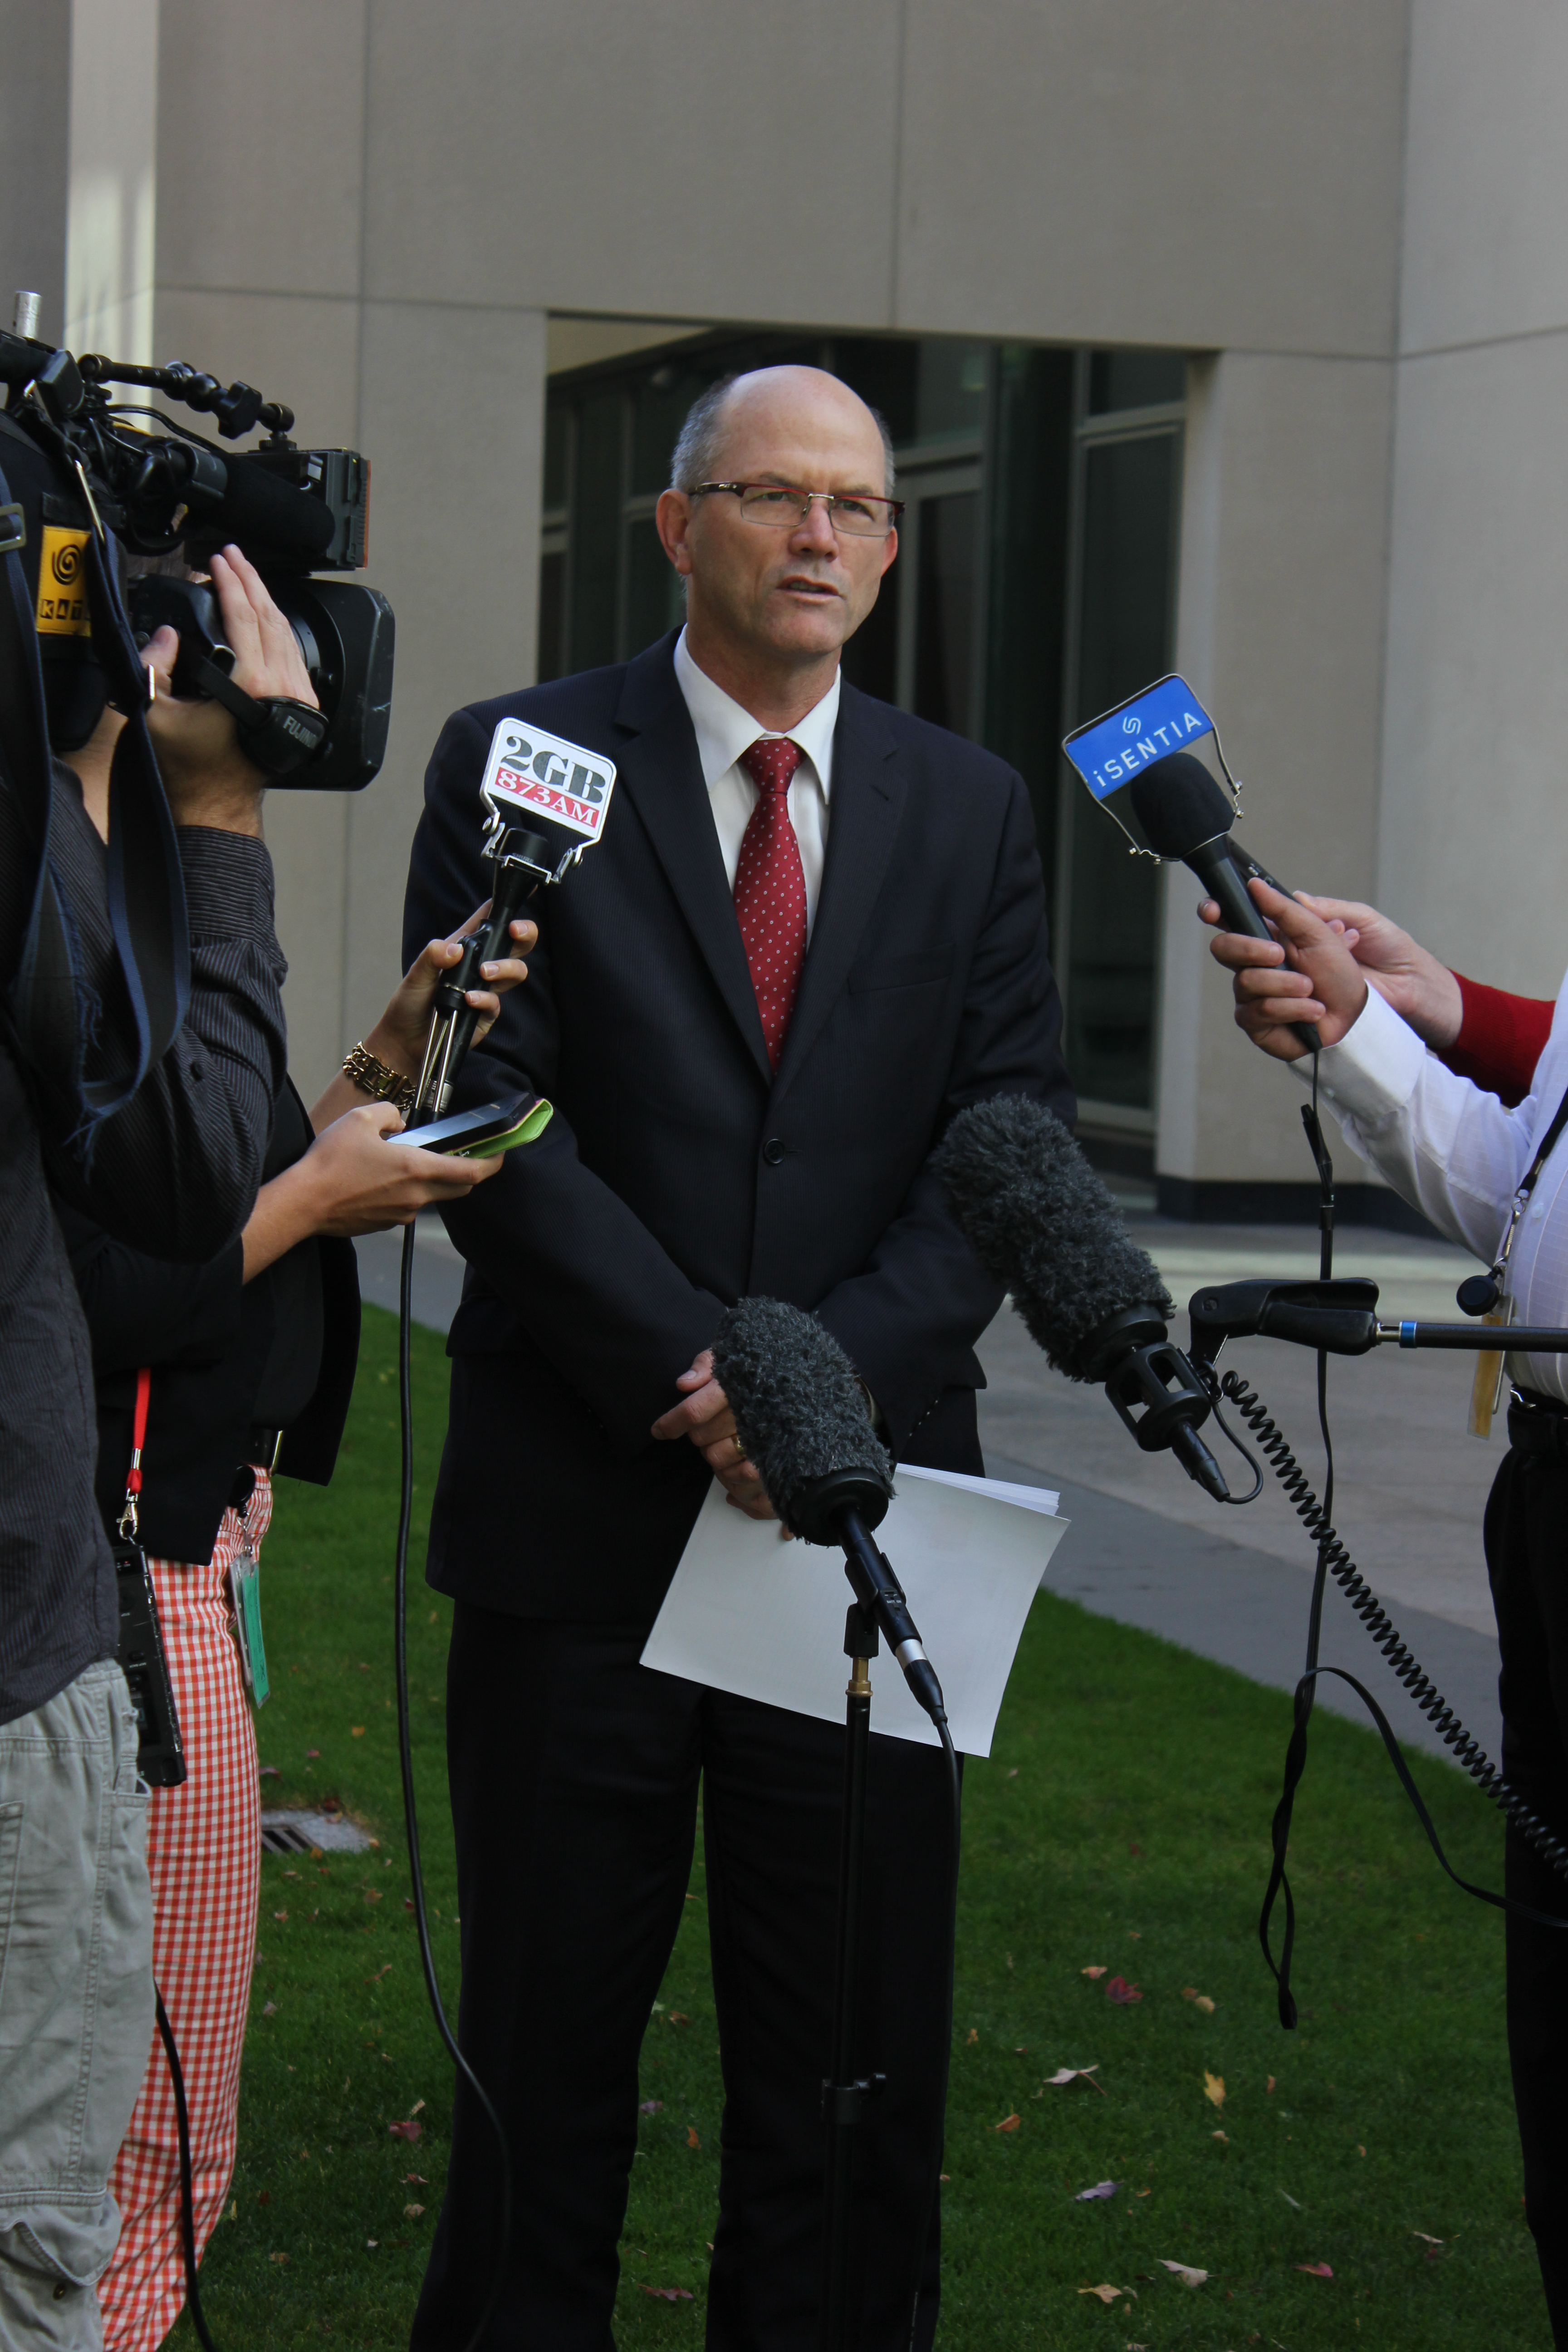 7168_dr_steve_hambleton_discusses_the_national_disability_insurance_scheme_with_the_media.jpg